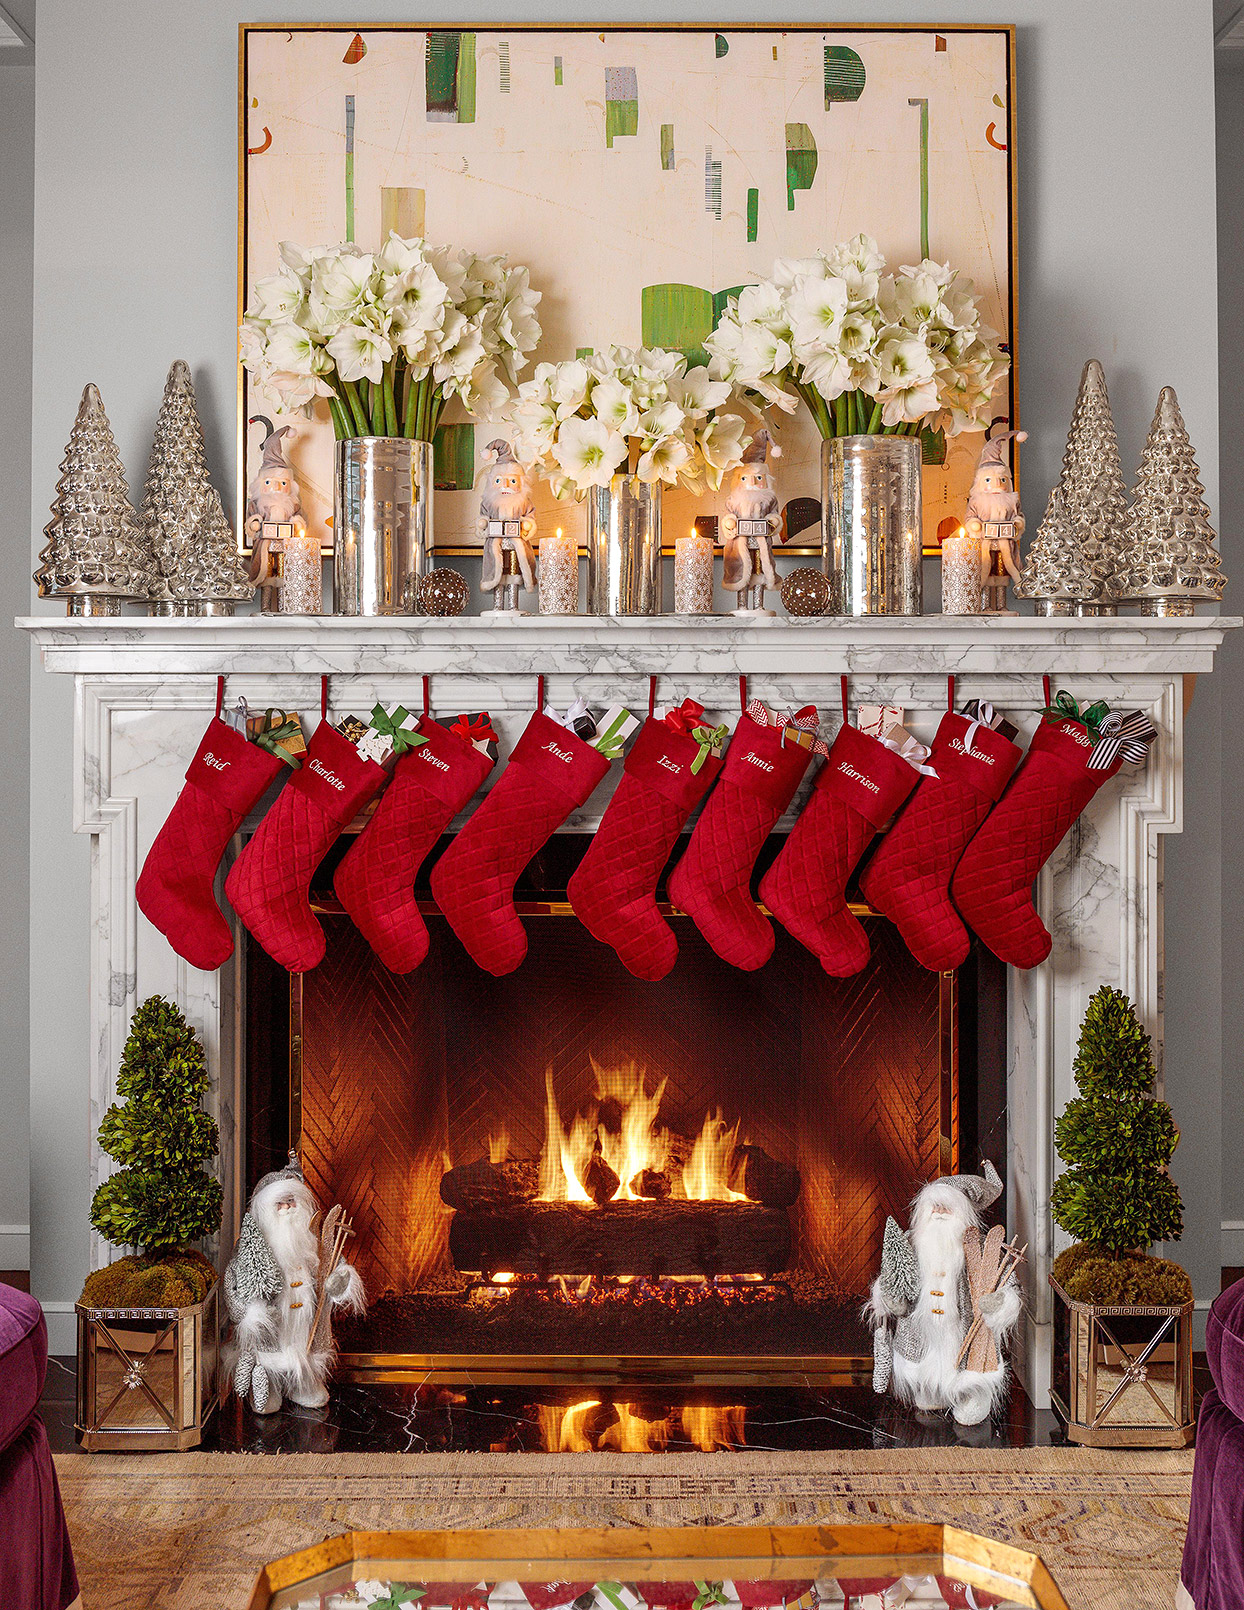 traditional Christmas mantel with hanging red stockings